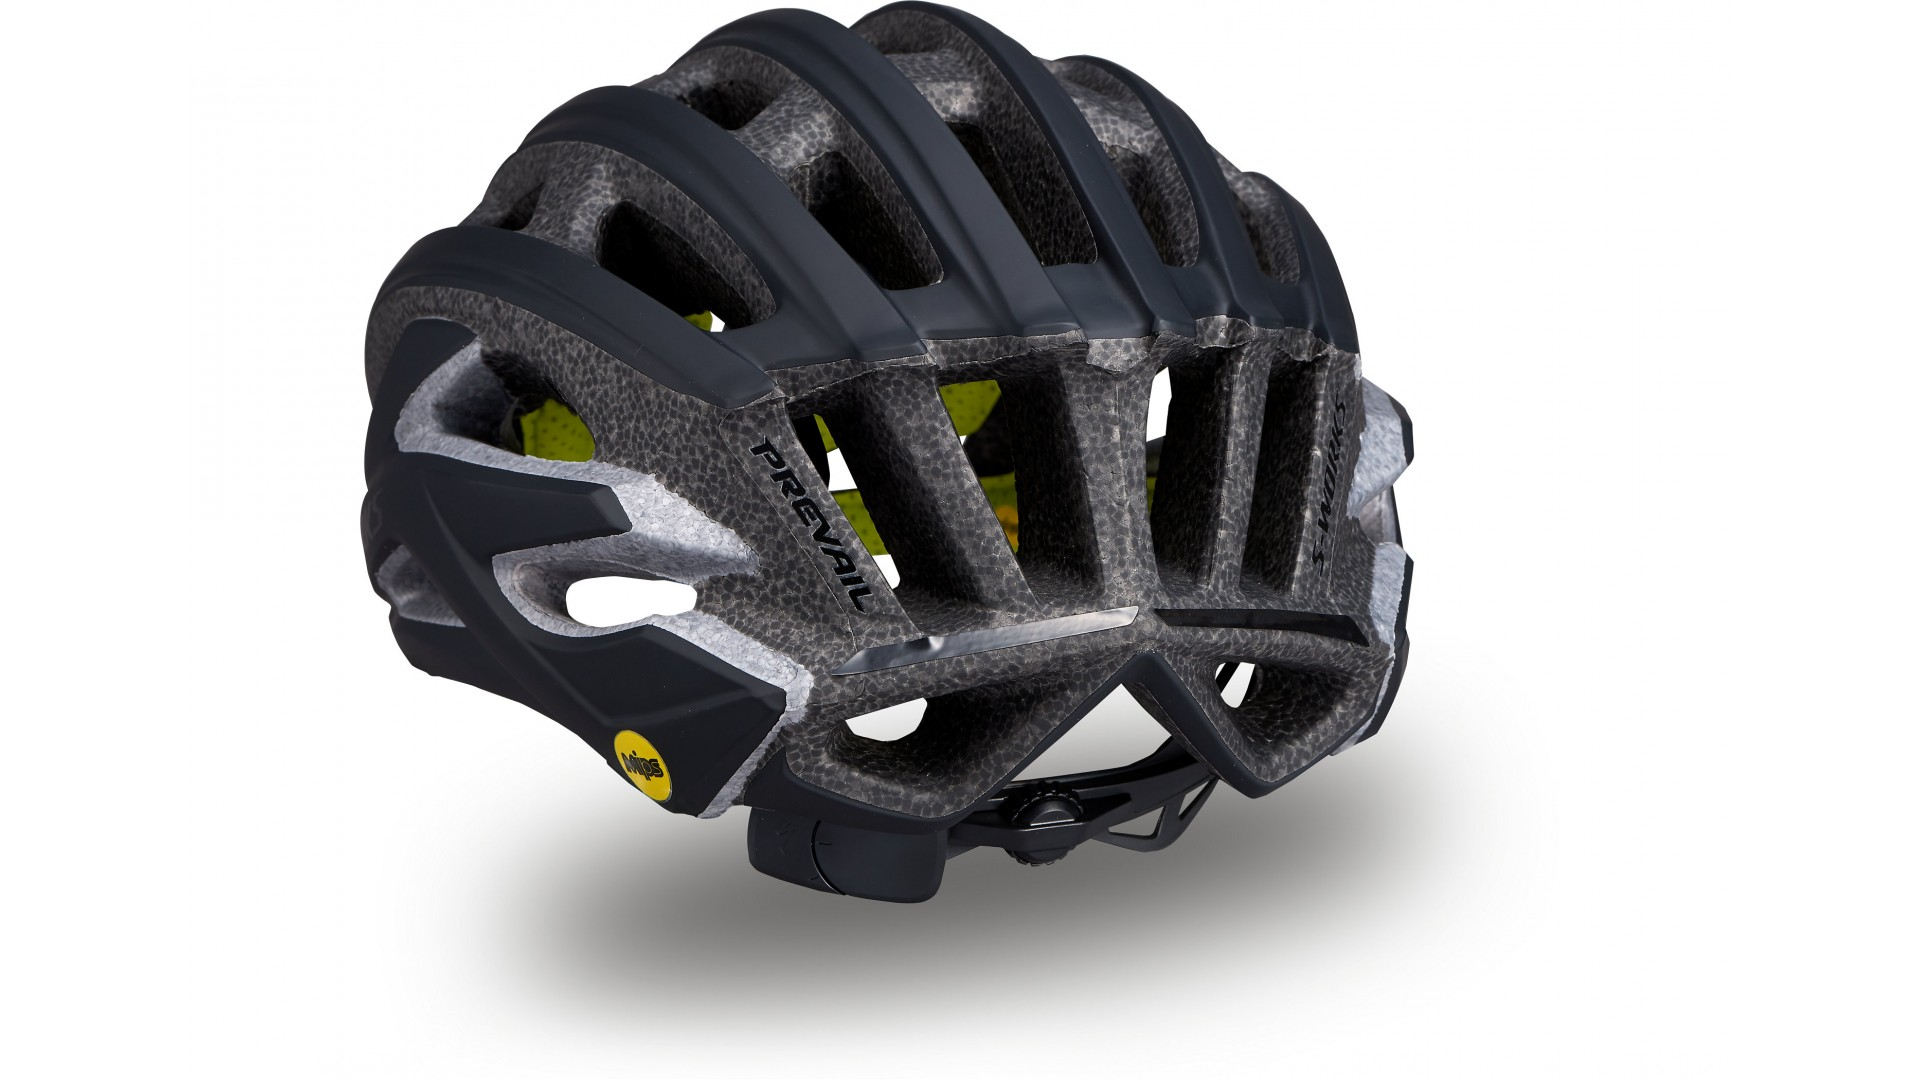 S-Works Prevail II Mips Casco Ciclismo Carretera Specialized Negro Mate 2 IBKBike.es